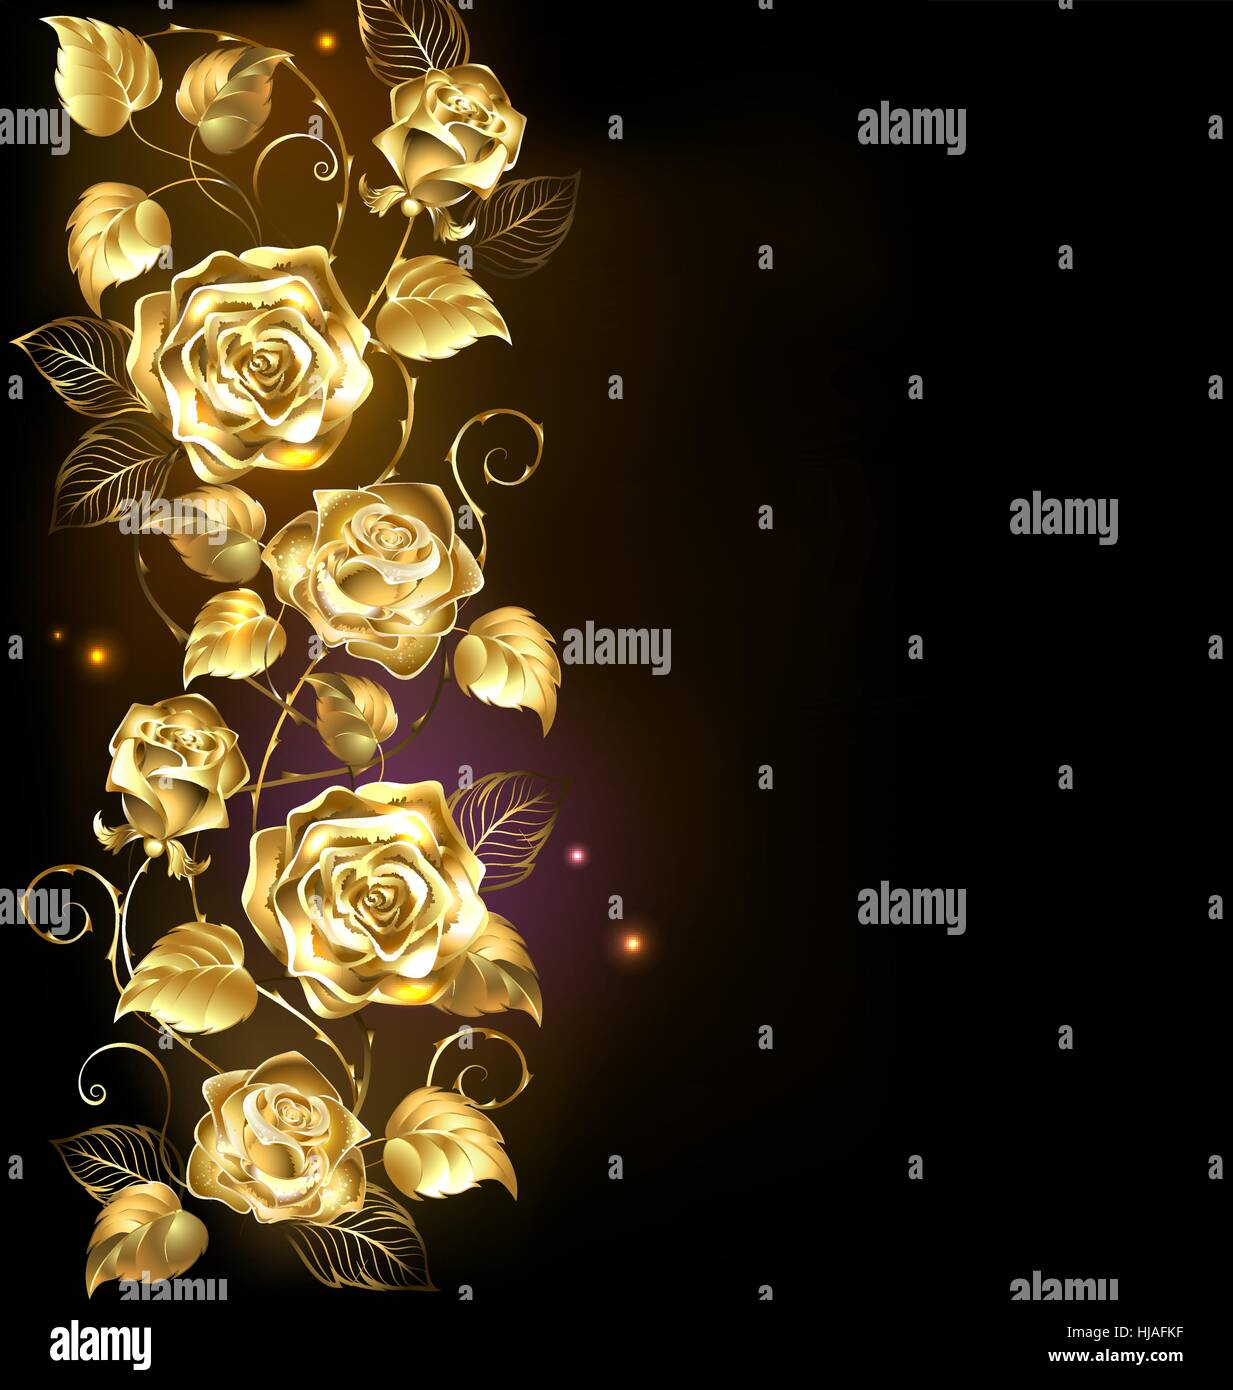 twisted gold roses on a black background. - Stock Vector